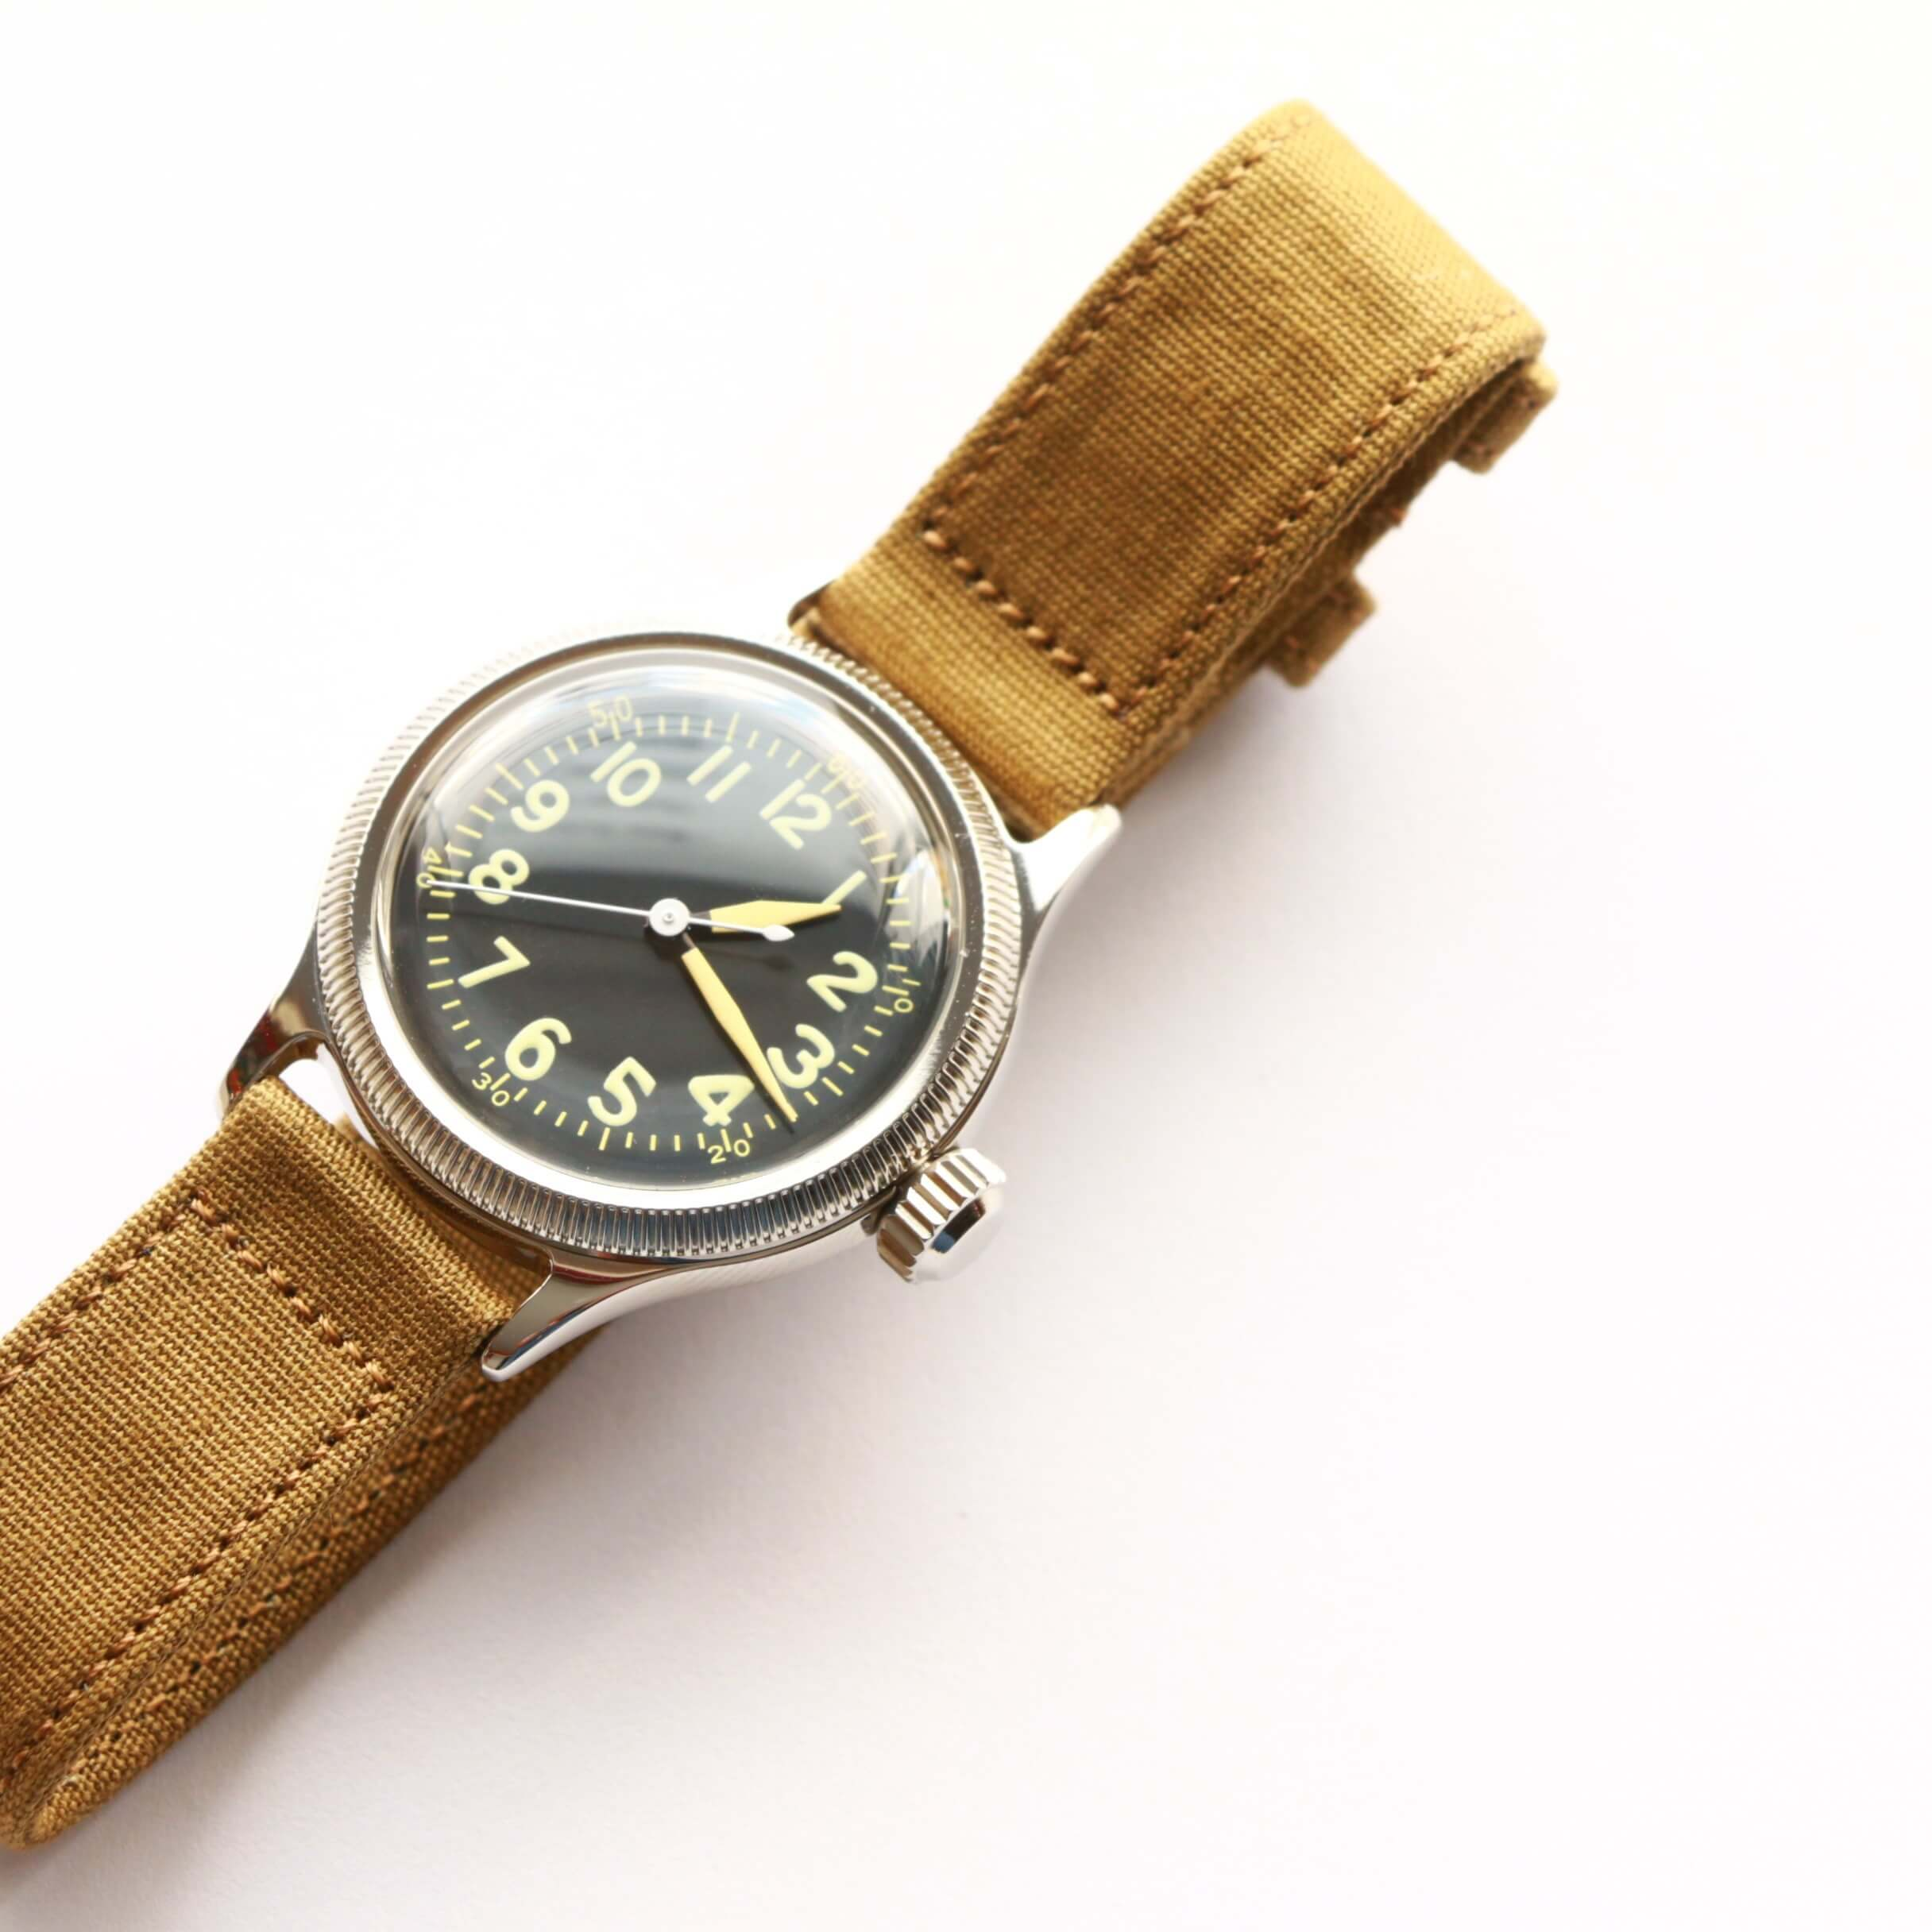 Buzz Rickson's バズリクソンズ TYPE A-11 WATCH NAVIGATION U.S. ARMY AIR FORCE ミリタリーウォッチ A-11